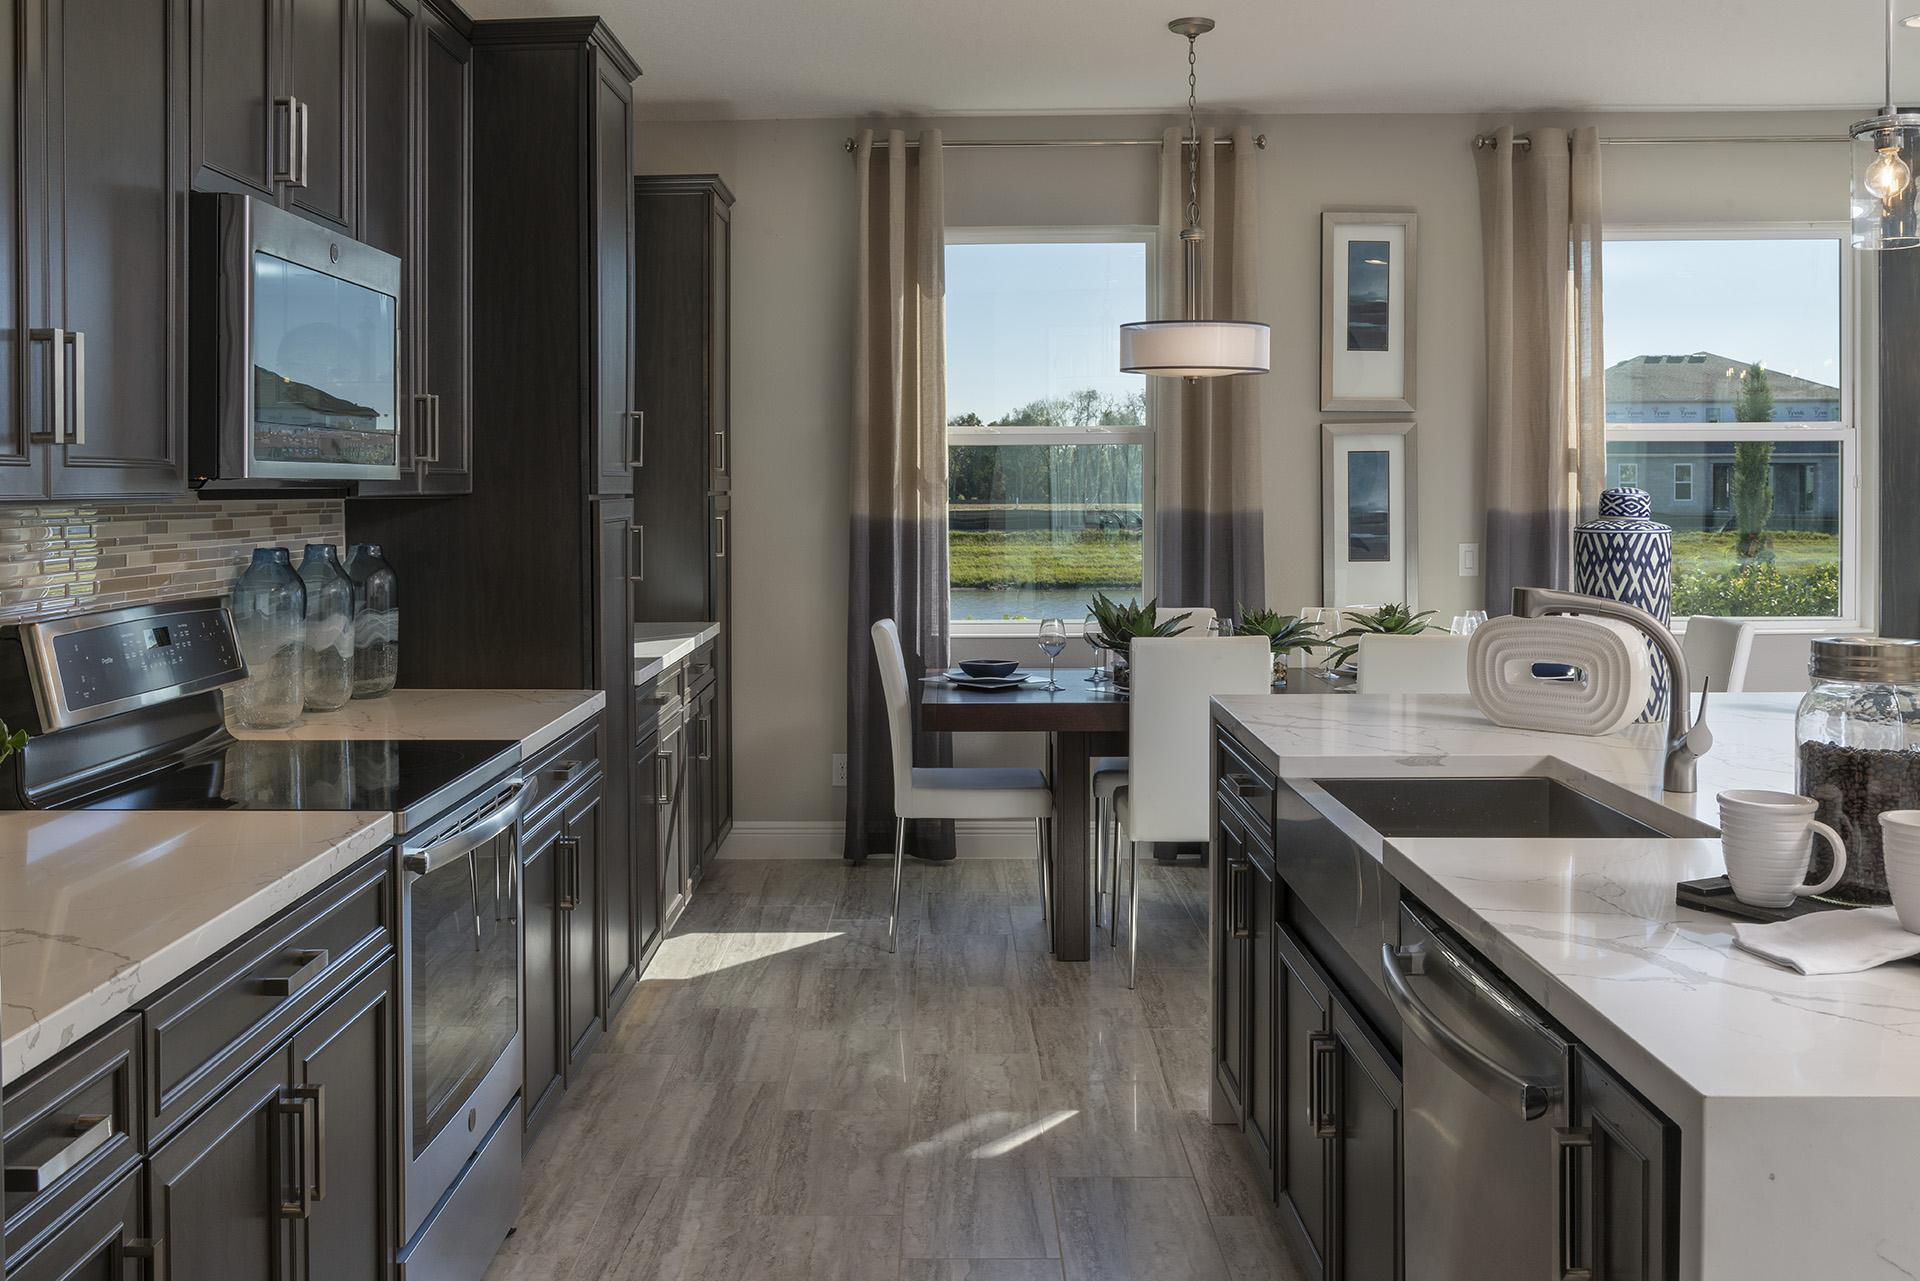 Kitchen featured in the Osceola Executive By Hanover Family Builders in Orlando, FL